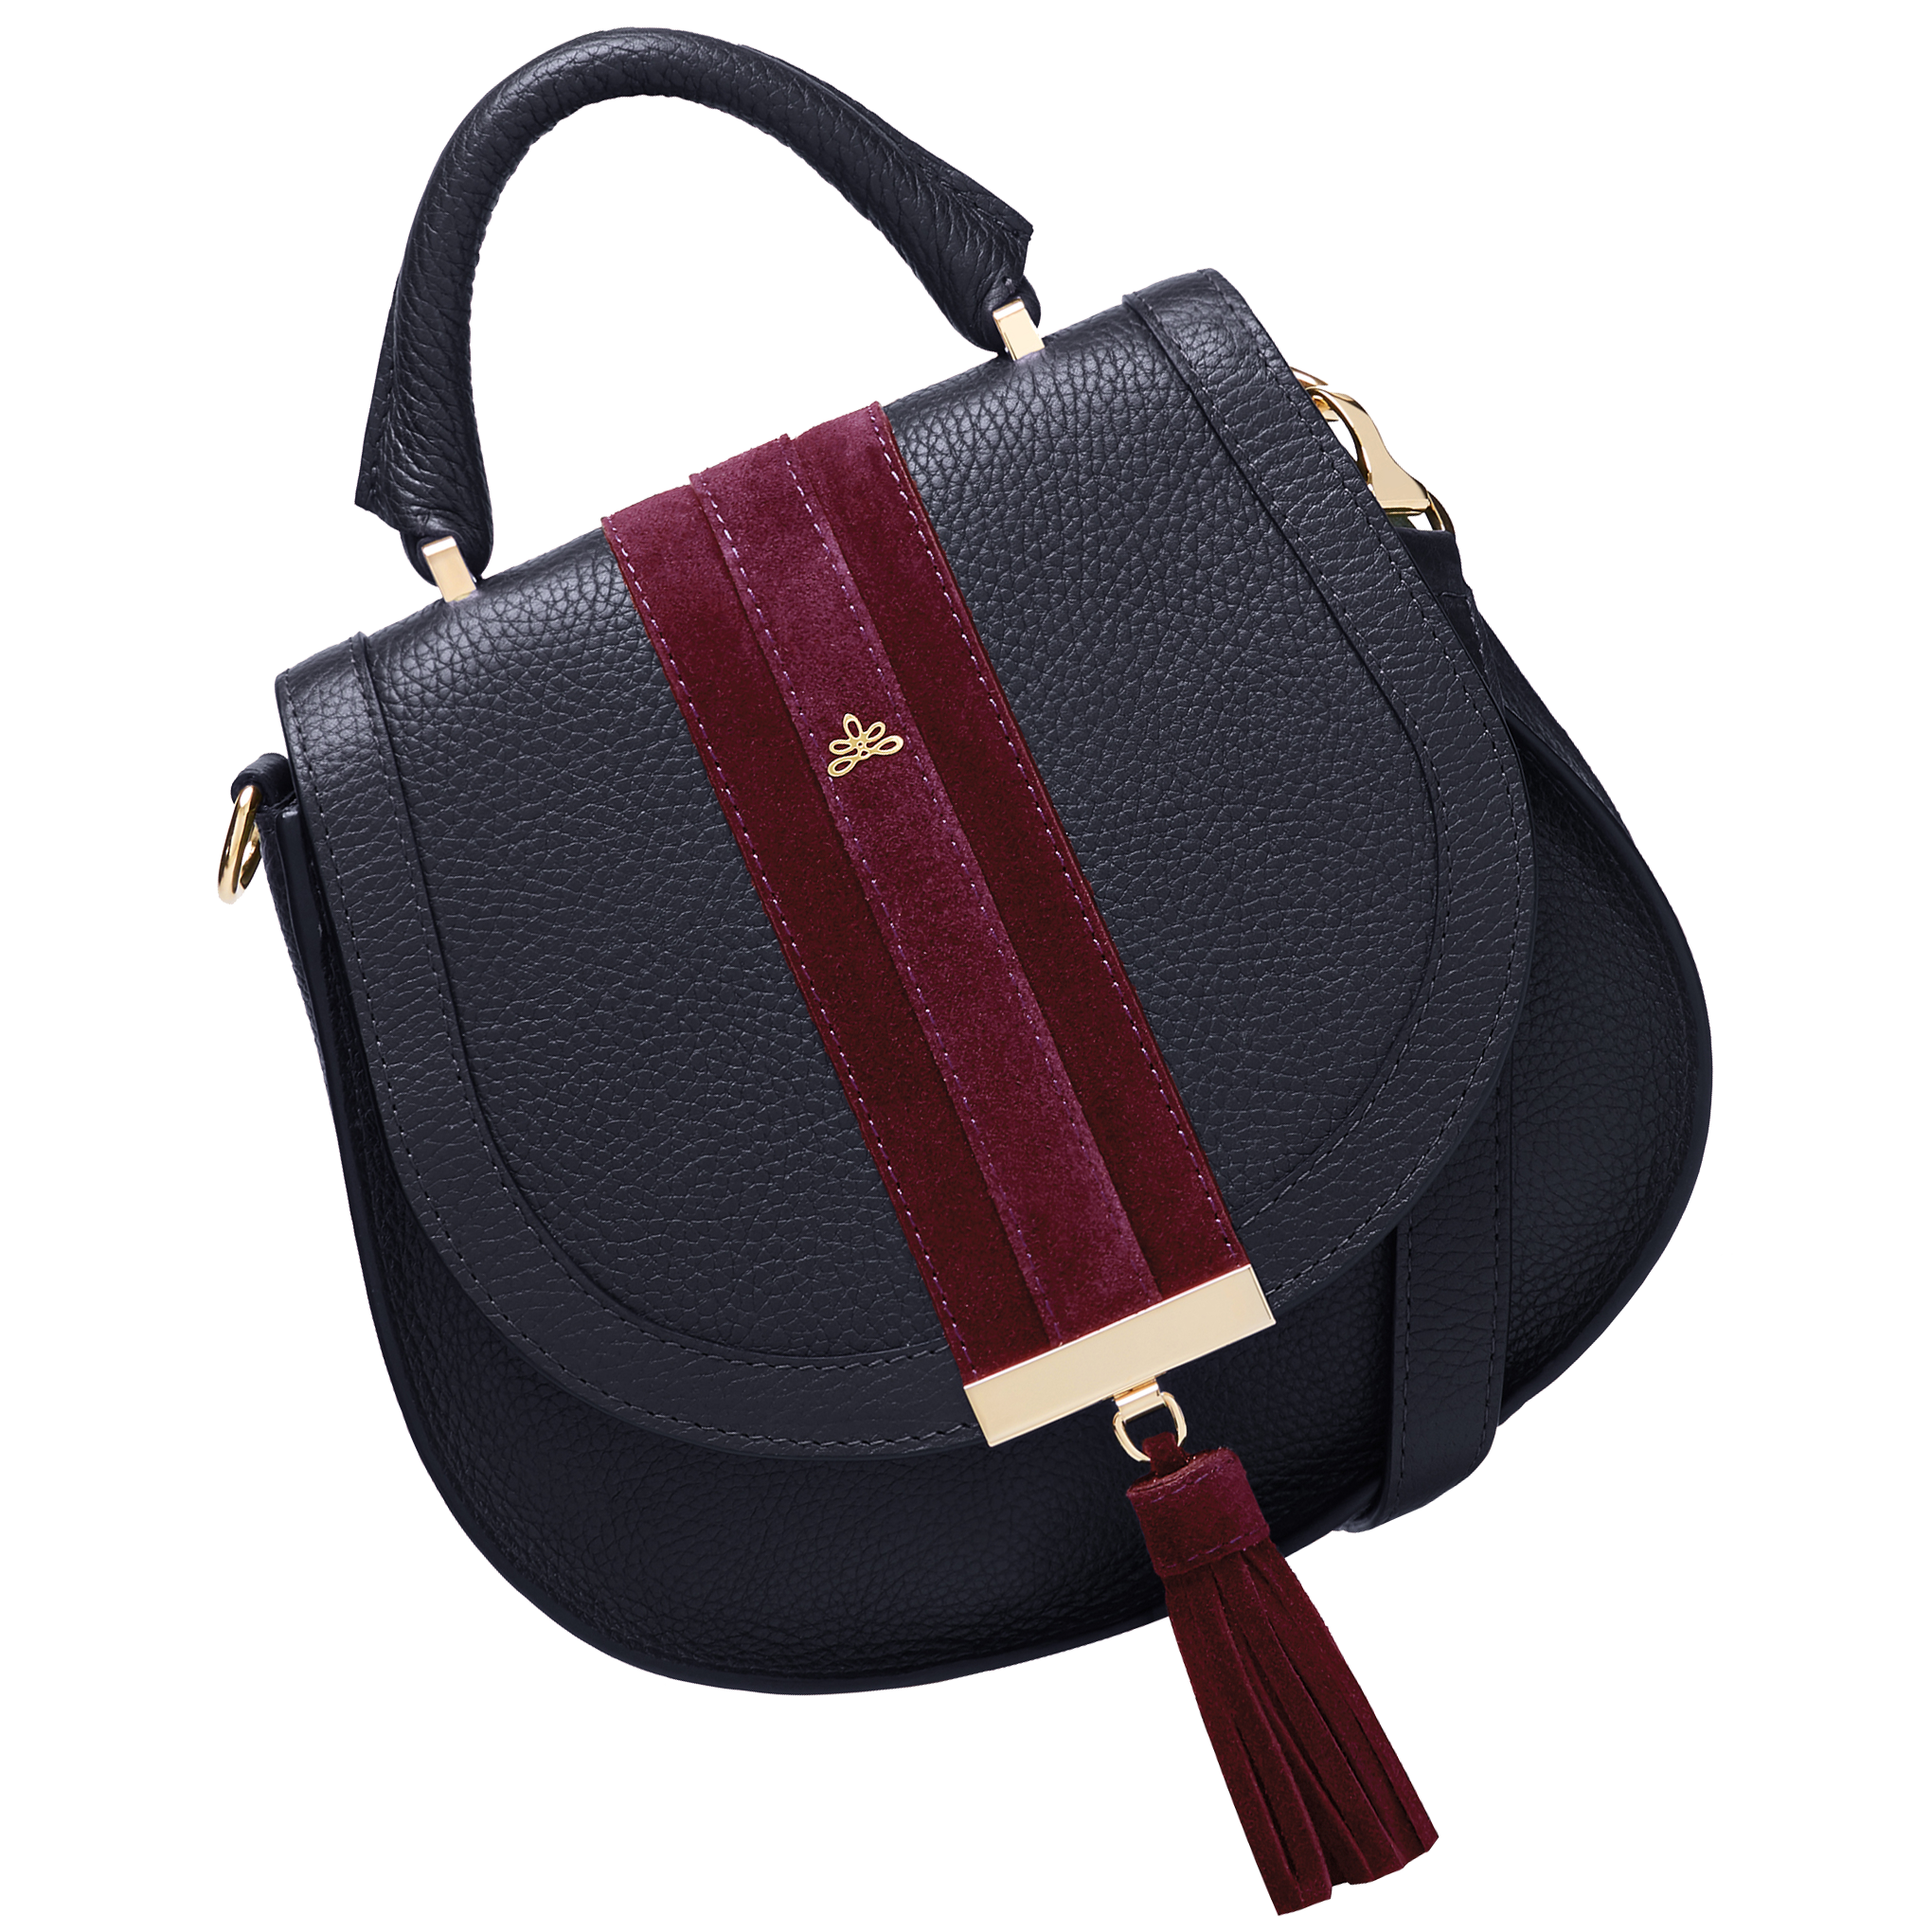 Demellier Bag How To Spend It